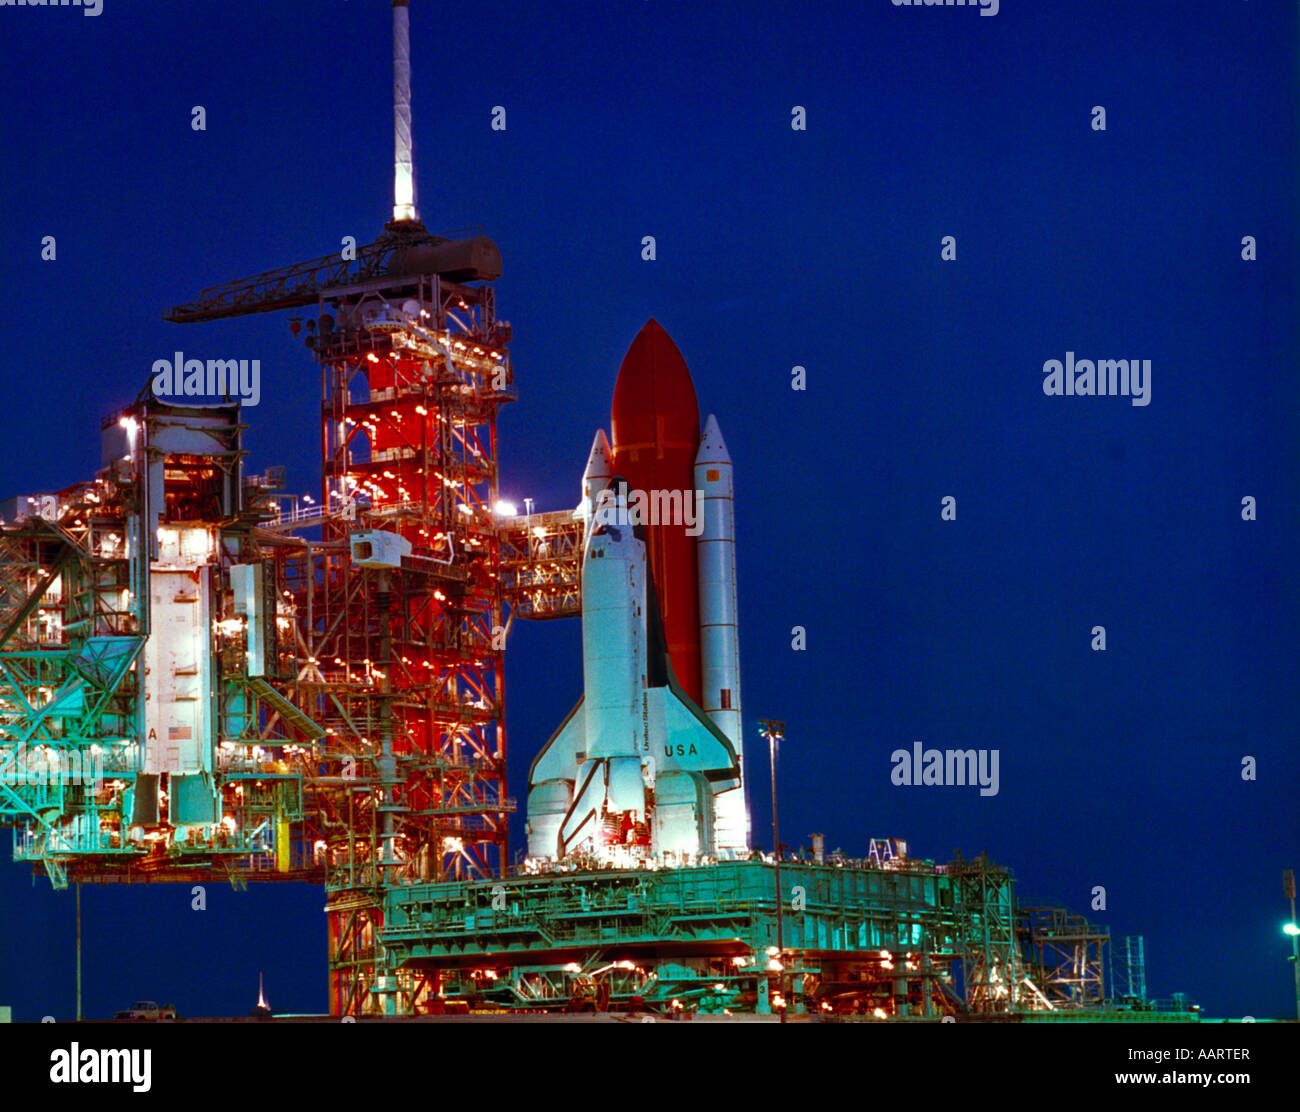 Space Shuttle Launch Columbia On Launch Pad At Dawn - Stock Image